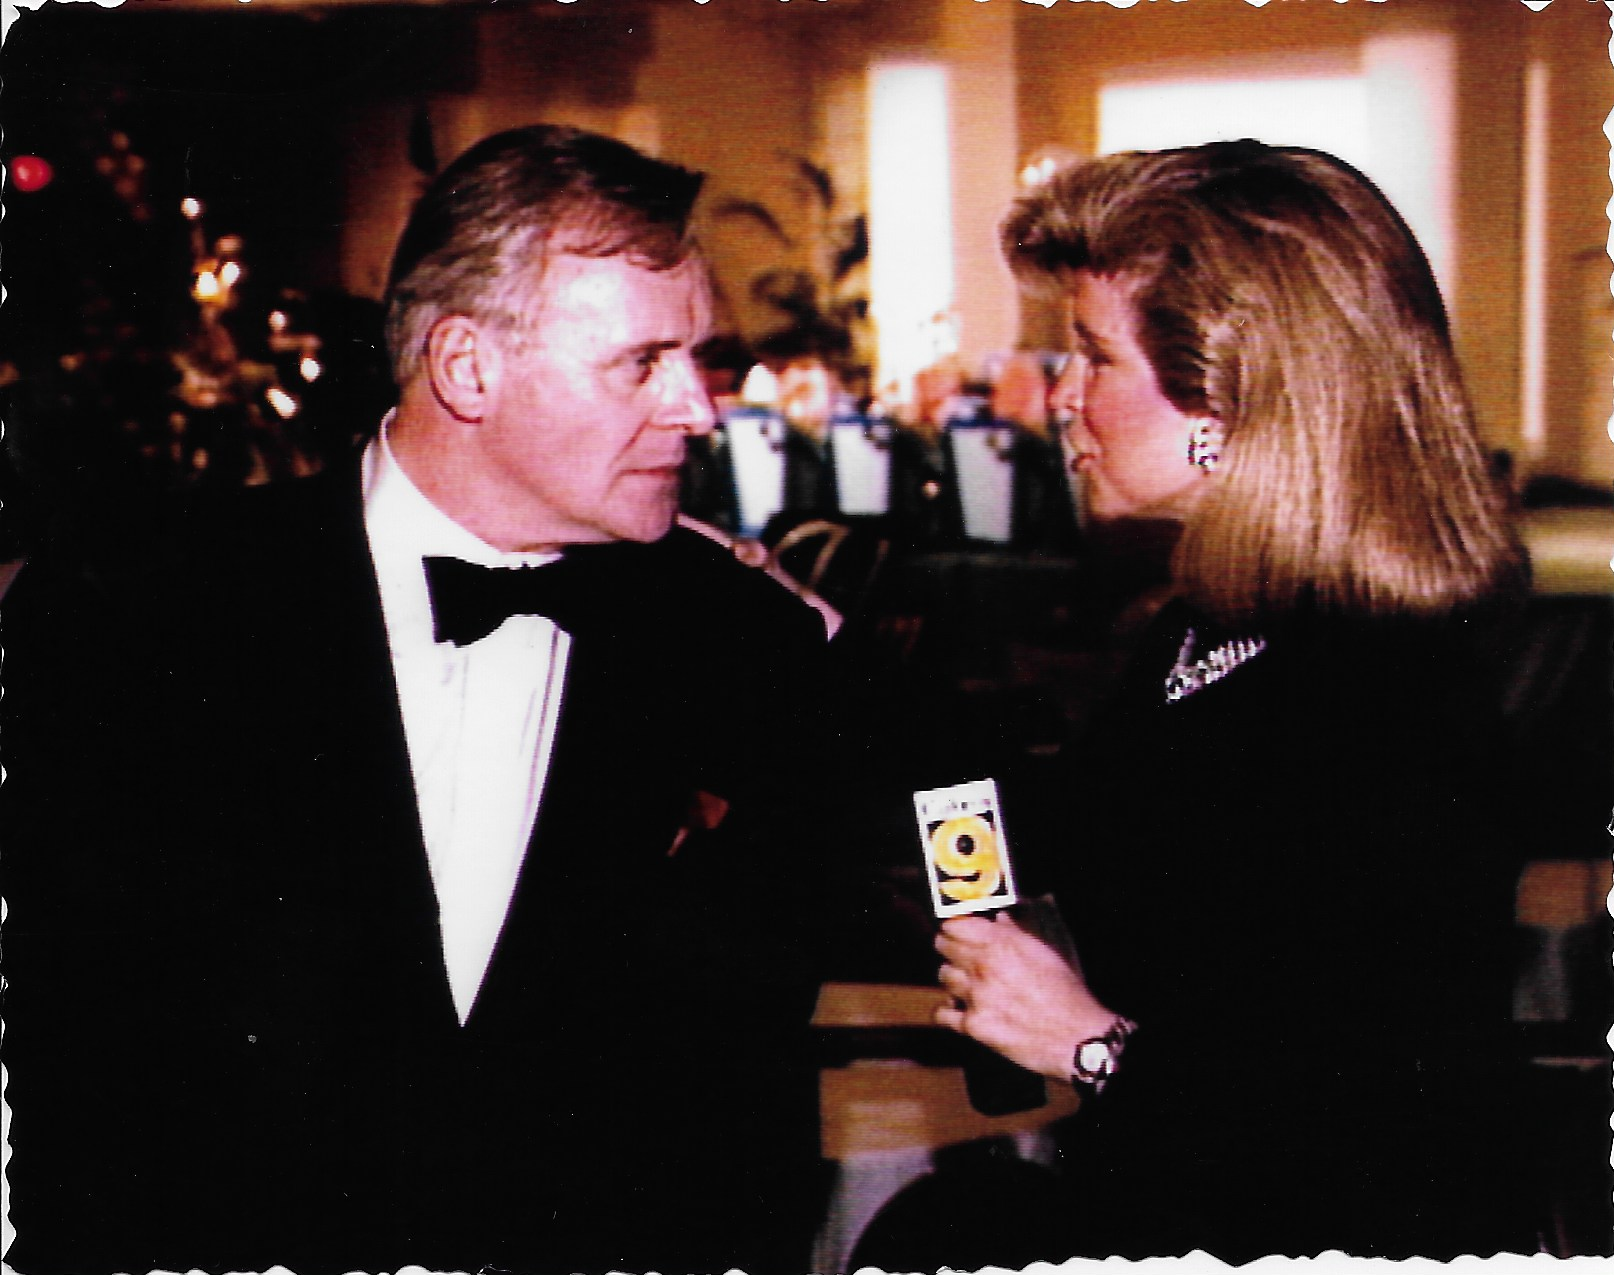 1992 KCAL OSCARS - ANTHONY KOPKINS